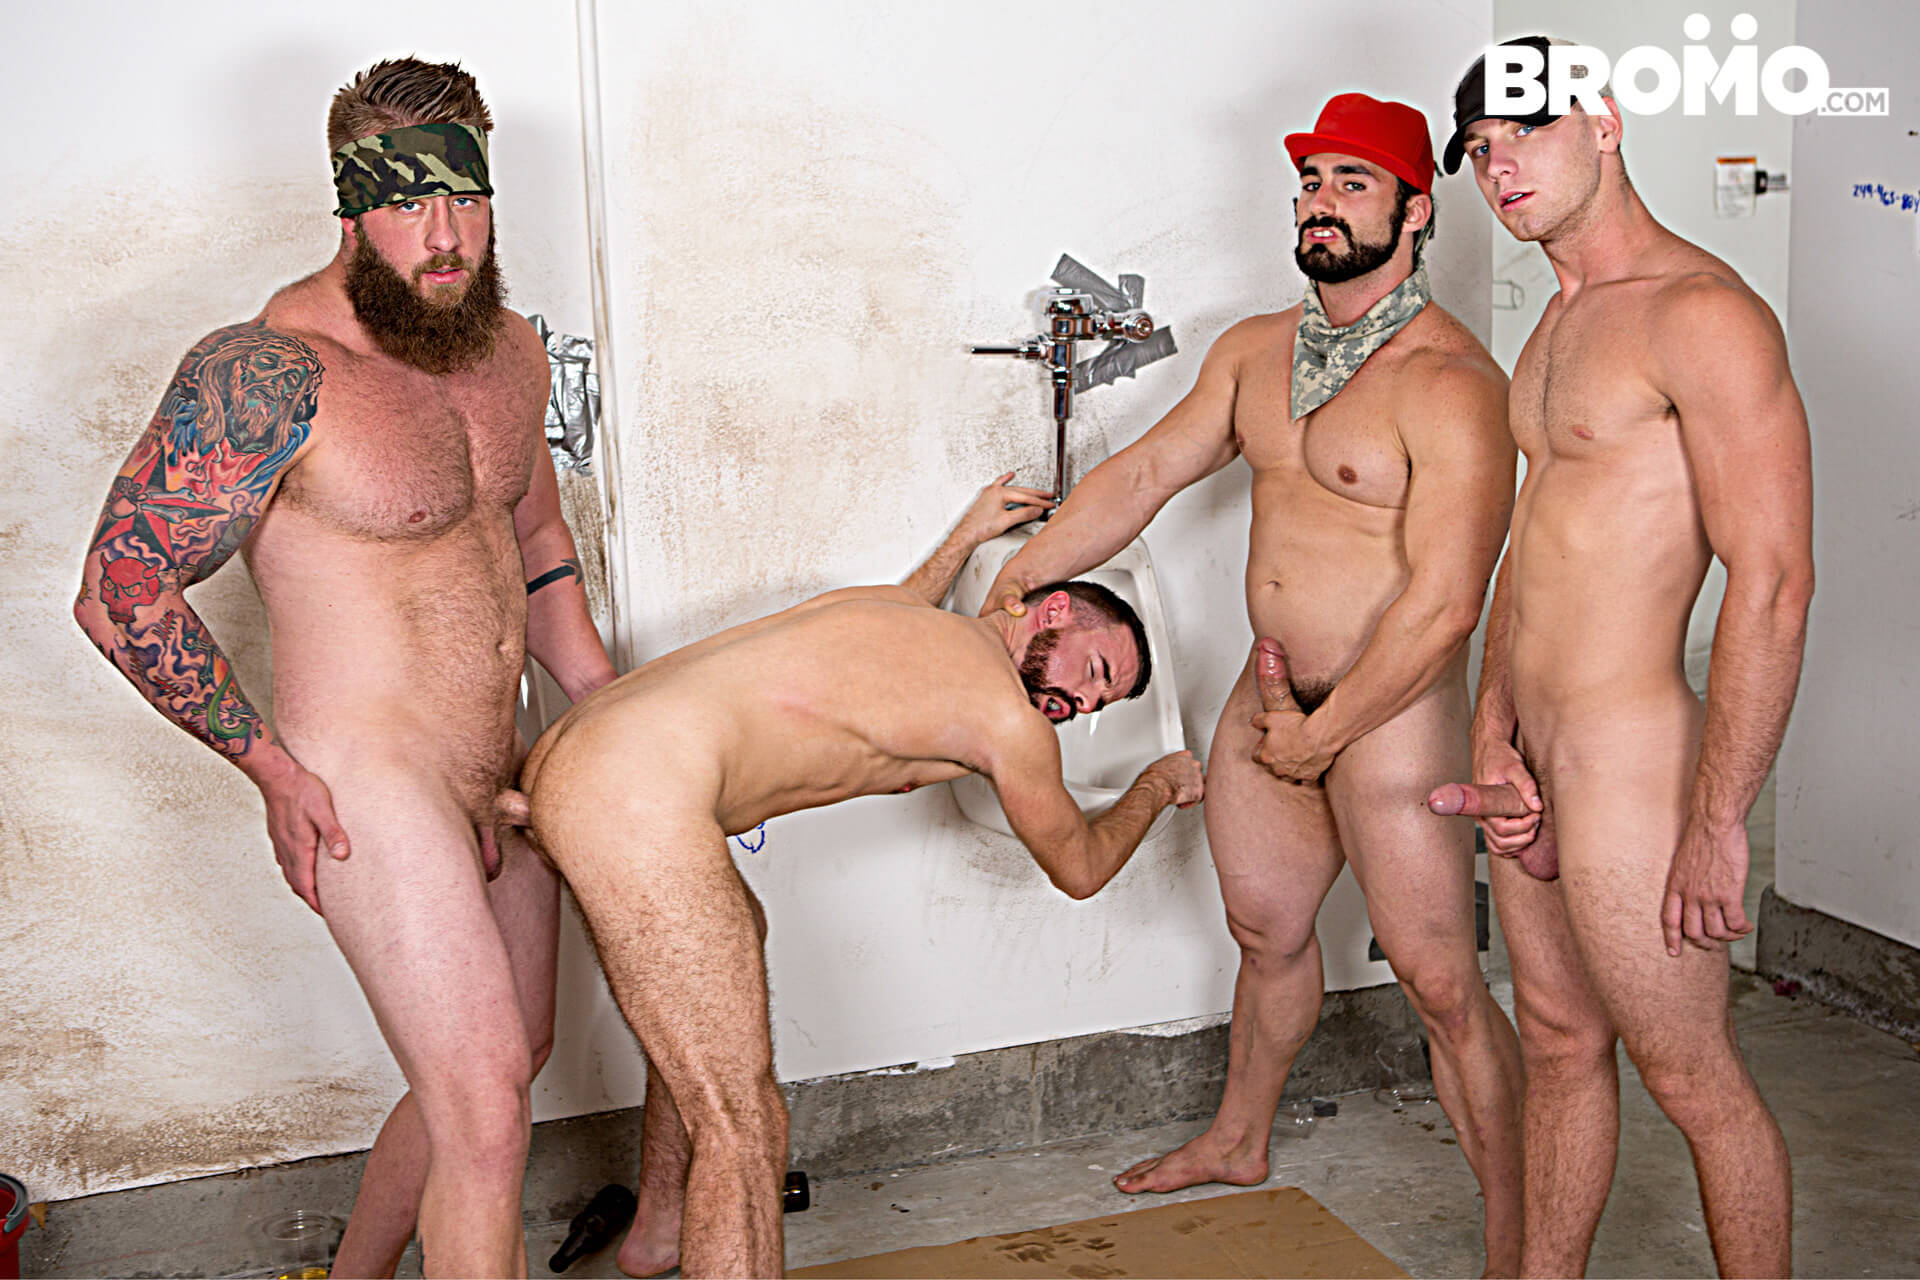 bromo the rednecks part 4 jaxton wheeler brandon evans aaron bruiser brendan patrick gay porn blog image 26